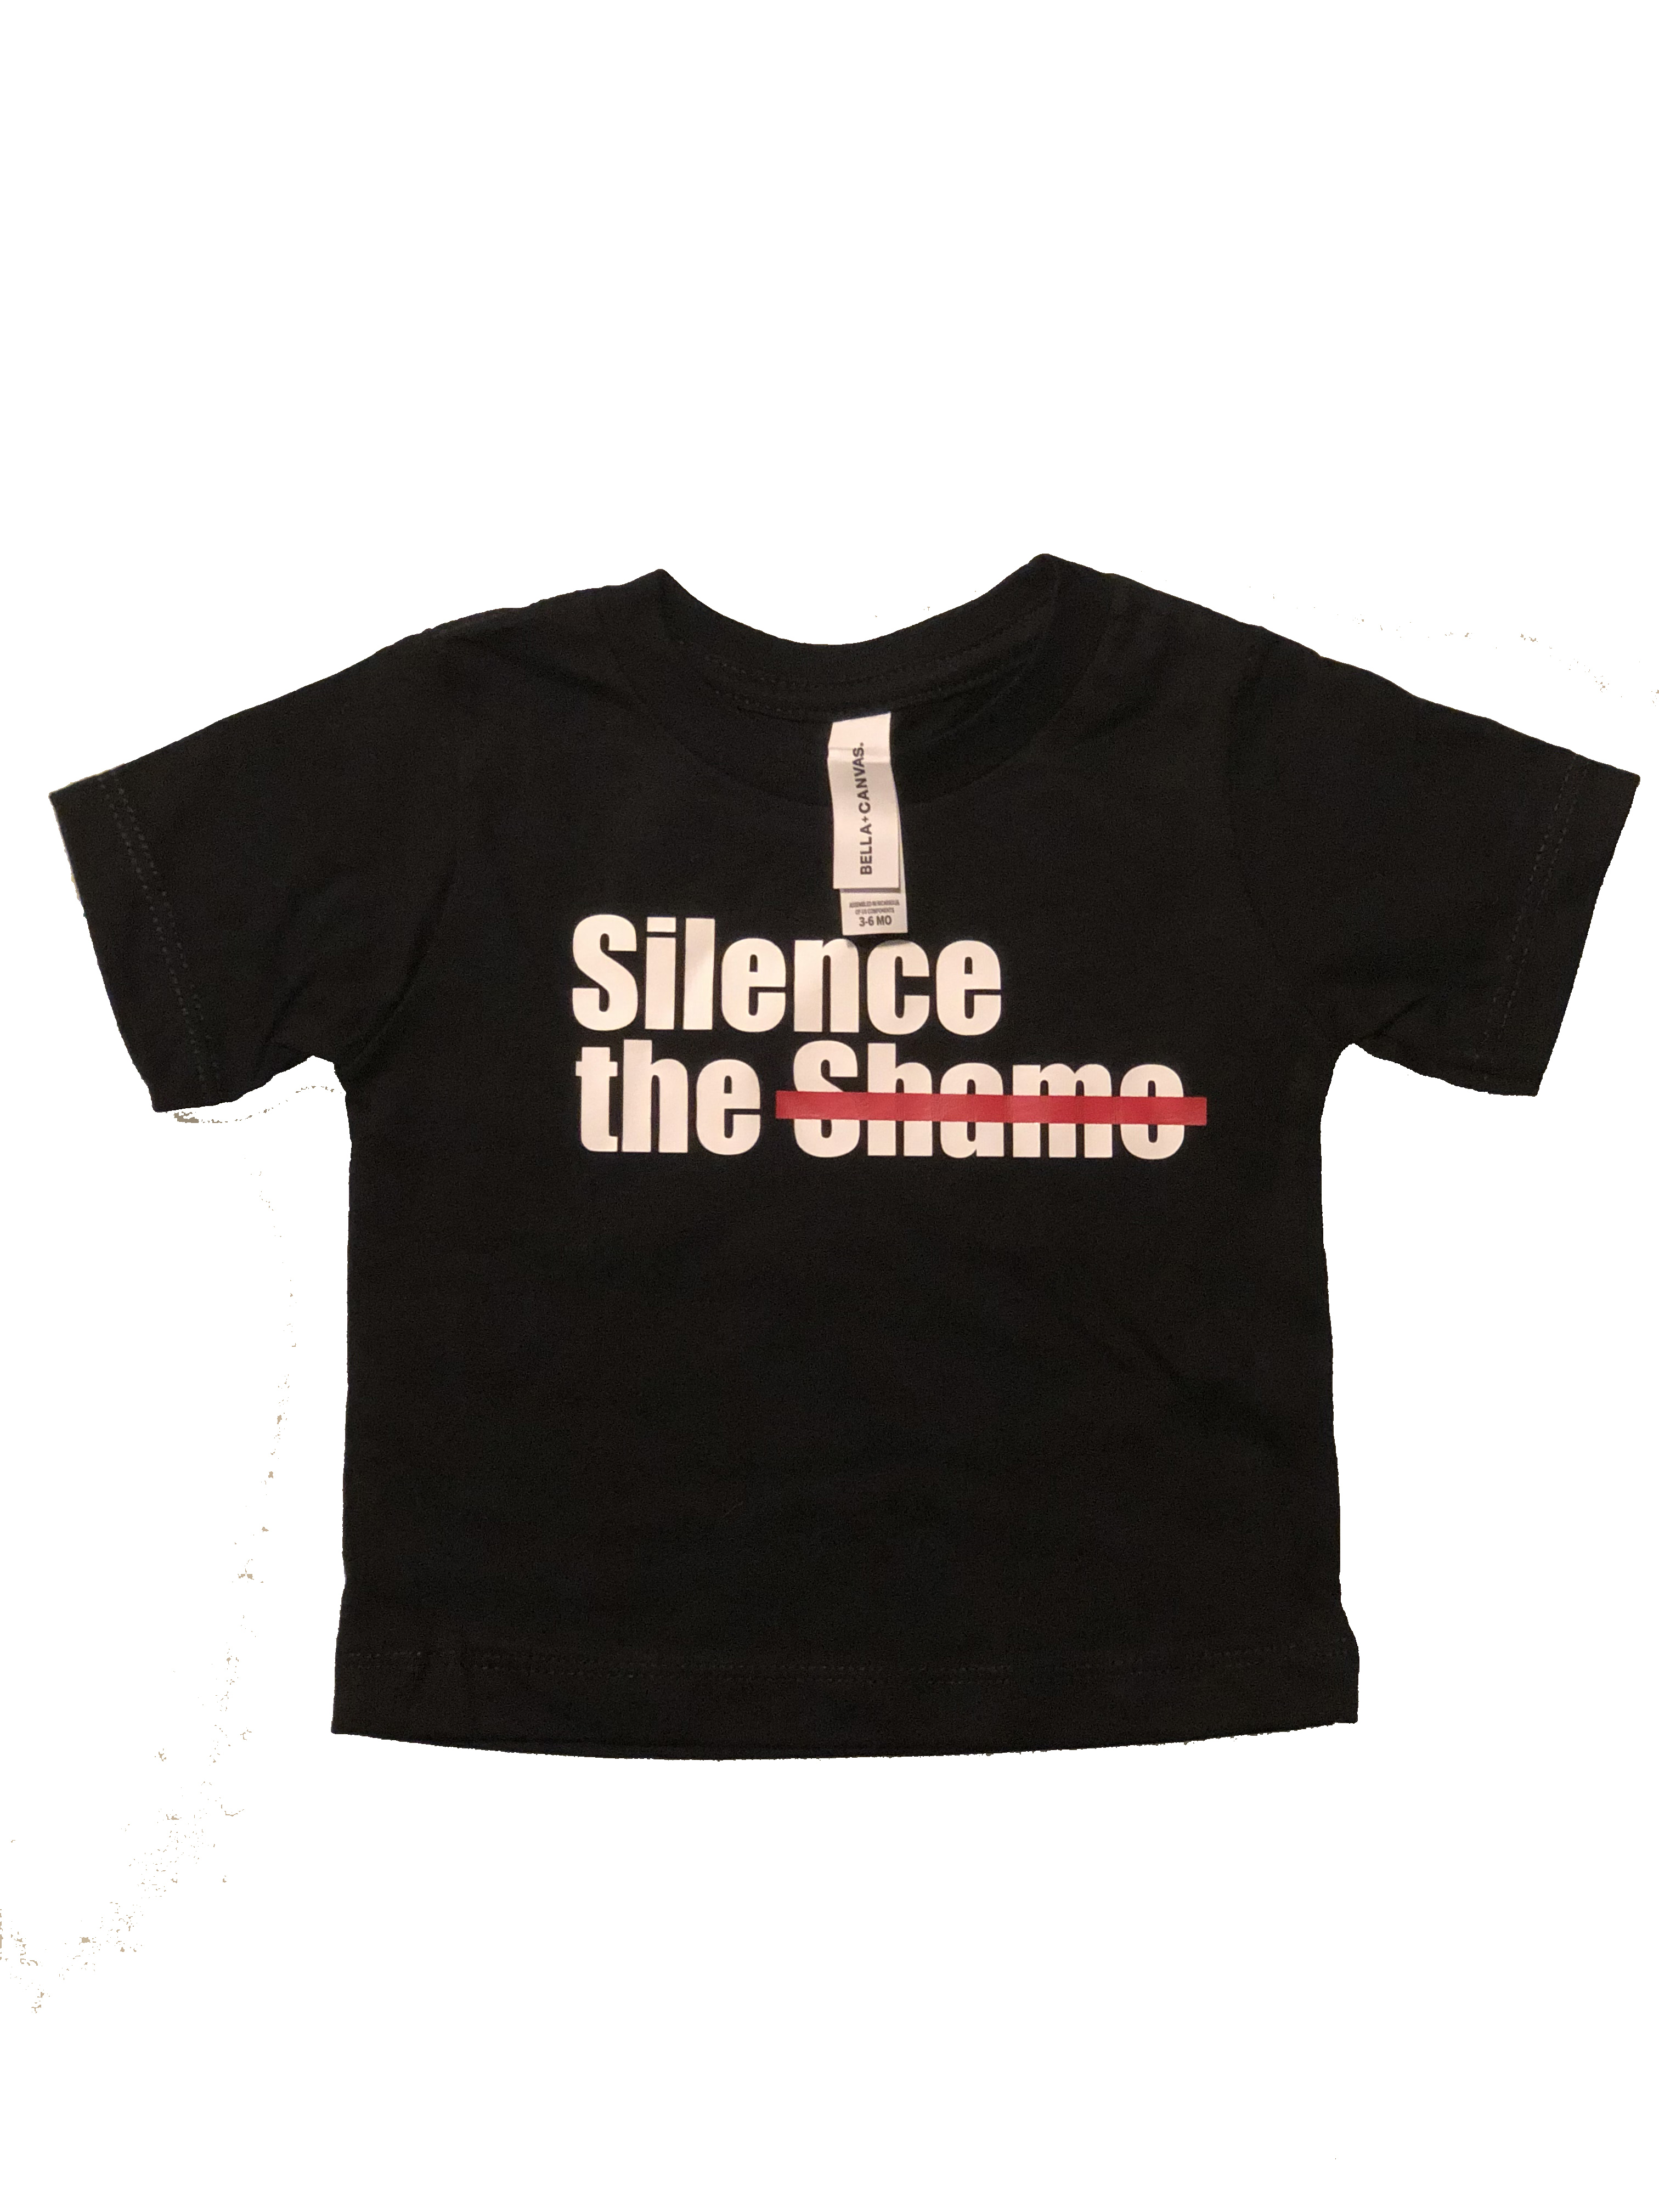 Silence the Shame Signature Black  Toddler T-Shirt 5/6T